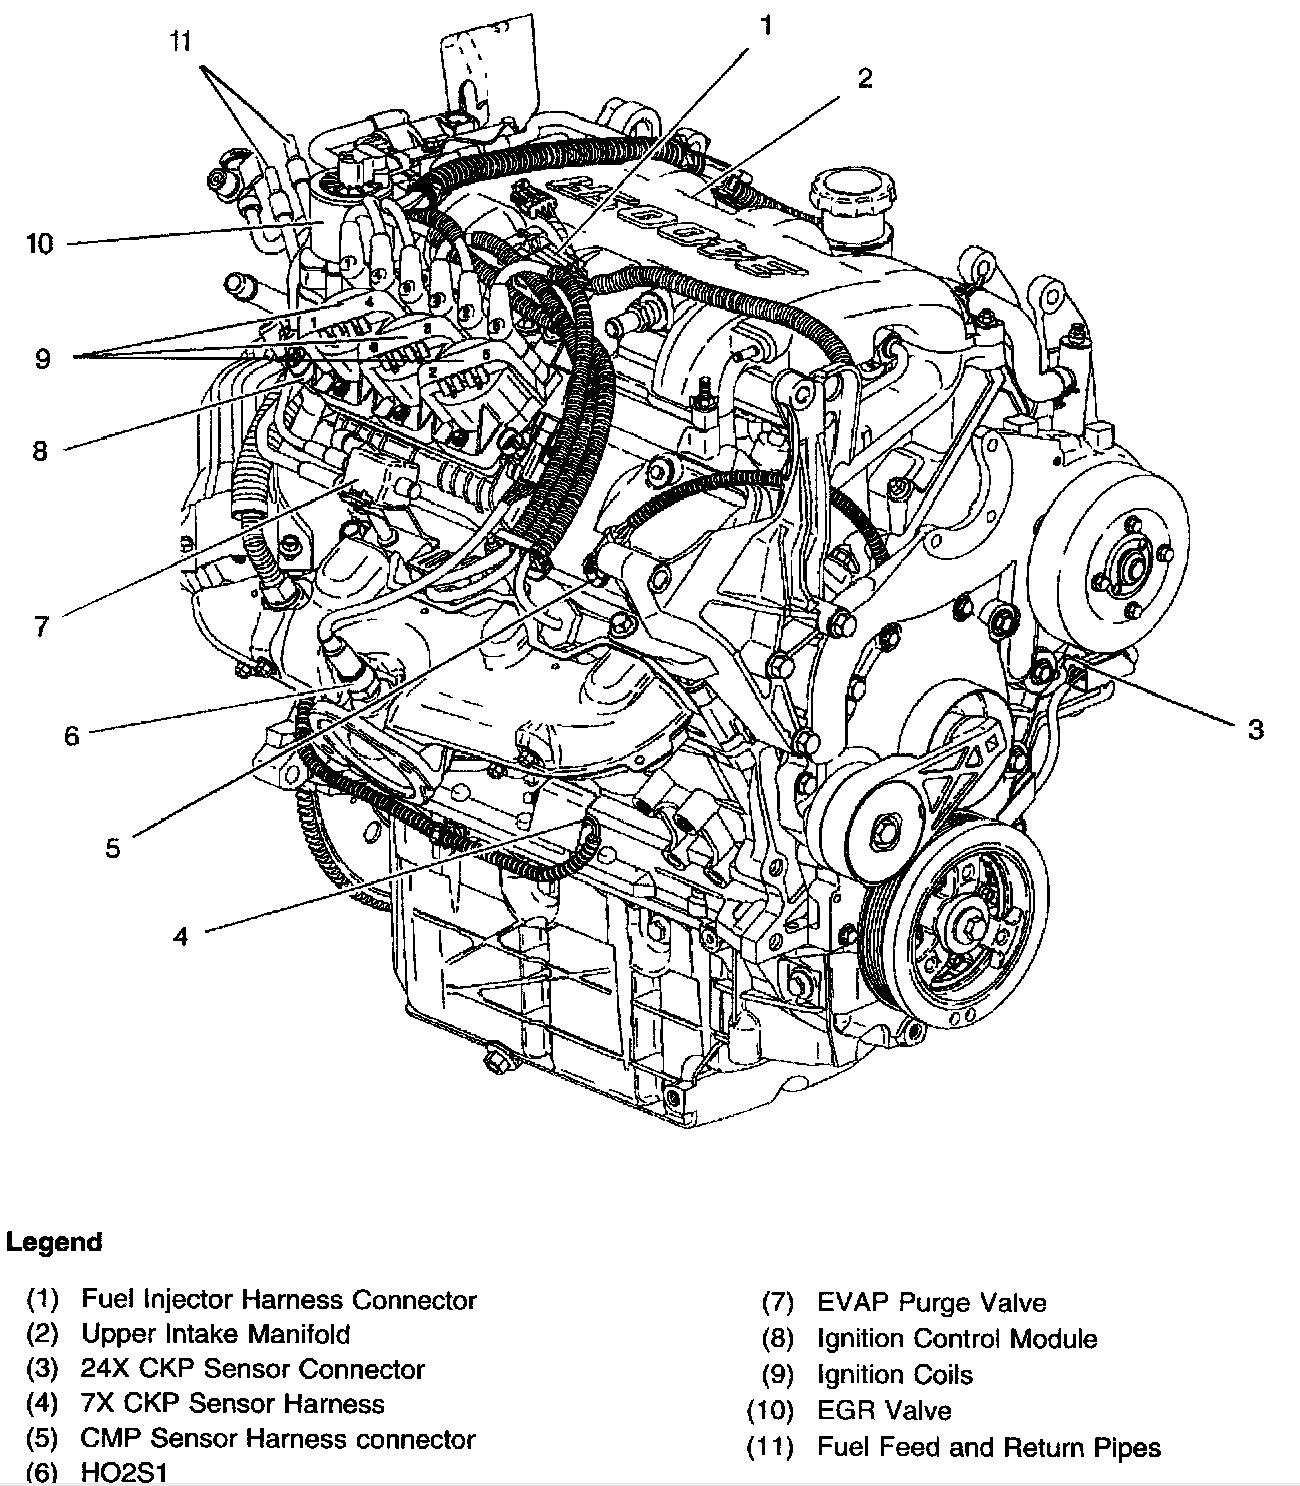 chevy 5 3 engine diagram diagram of 4 3 liter chevy silverado engine wiring diagrams blog  diagram of 4 3 liter chevy silverado